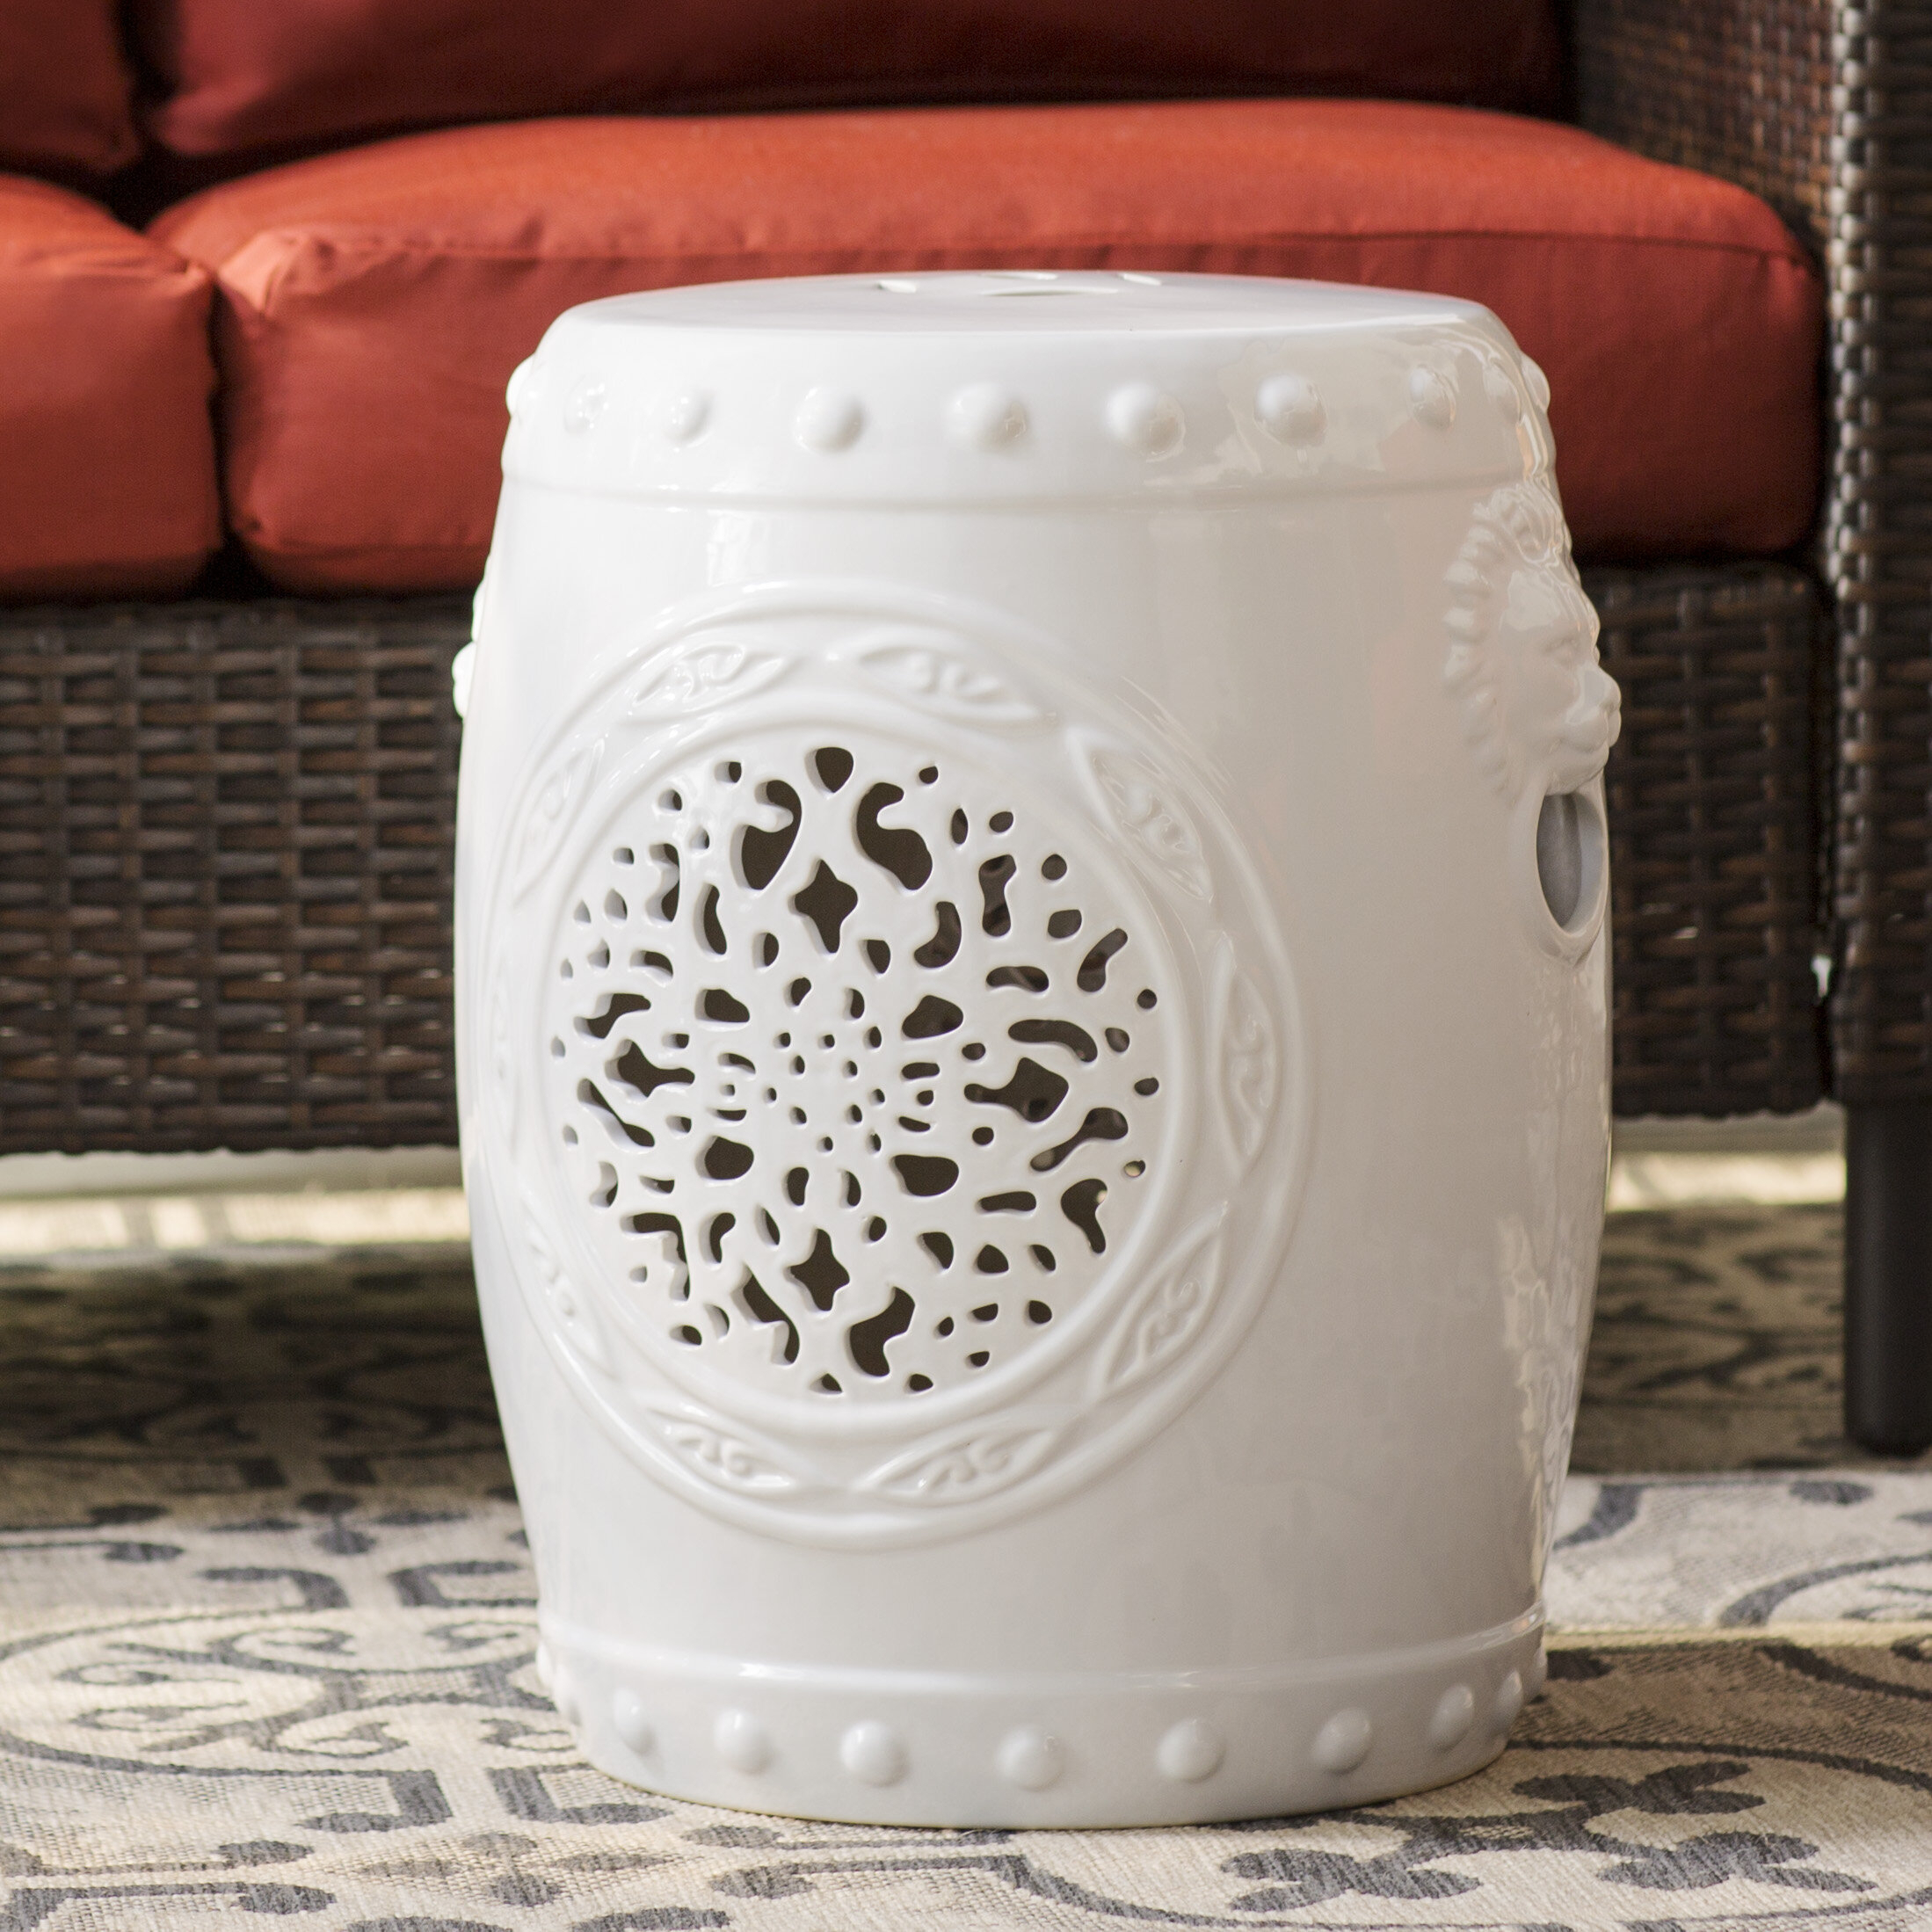 Blue & White Garden Stools You'Ll Love In 2020 | Wayfair Pertaining To Williar Cherry Blossom Ceramic Garden Stools (View 12 of 25)